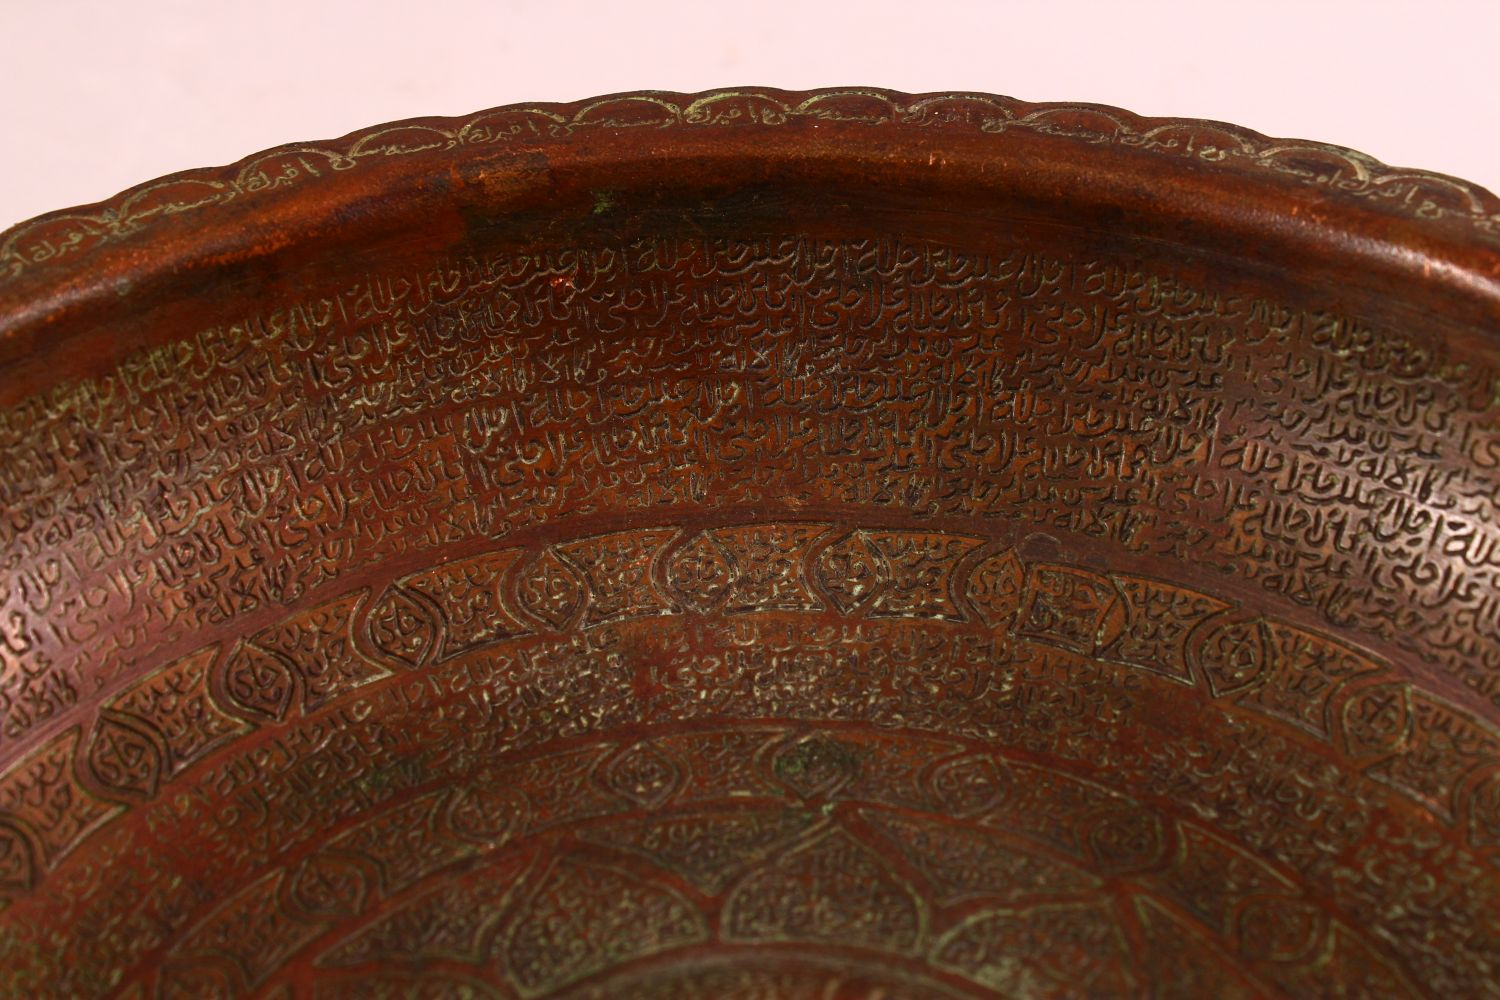 A GOOD PERSIAN ENGRAVED SIGNED BRASS MAGIC BOWL, the interior carved with a profuse amount of - Image 2 of 6